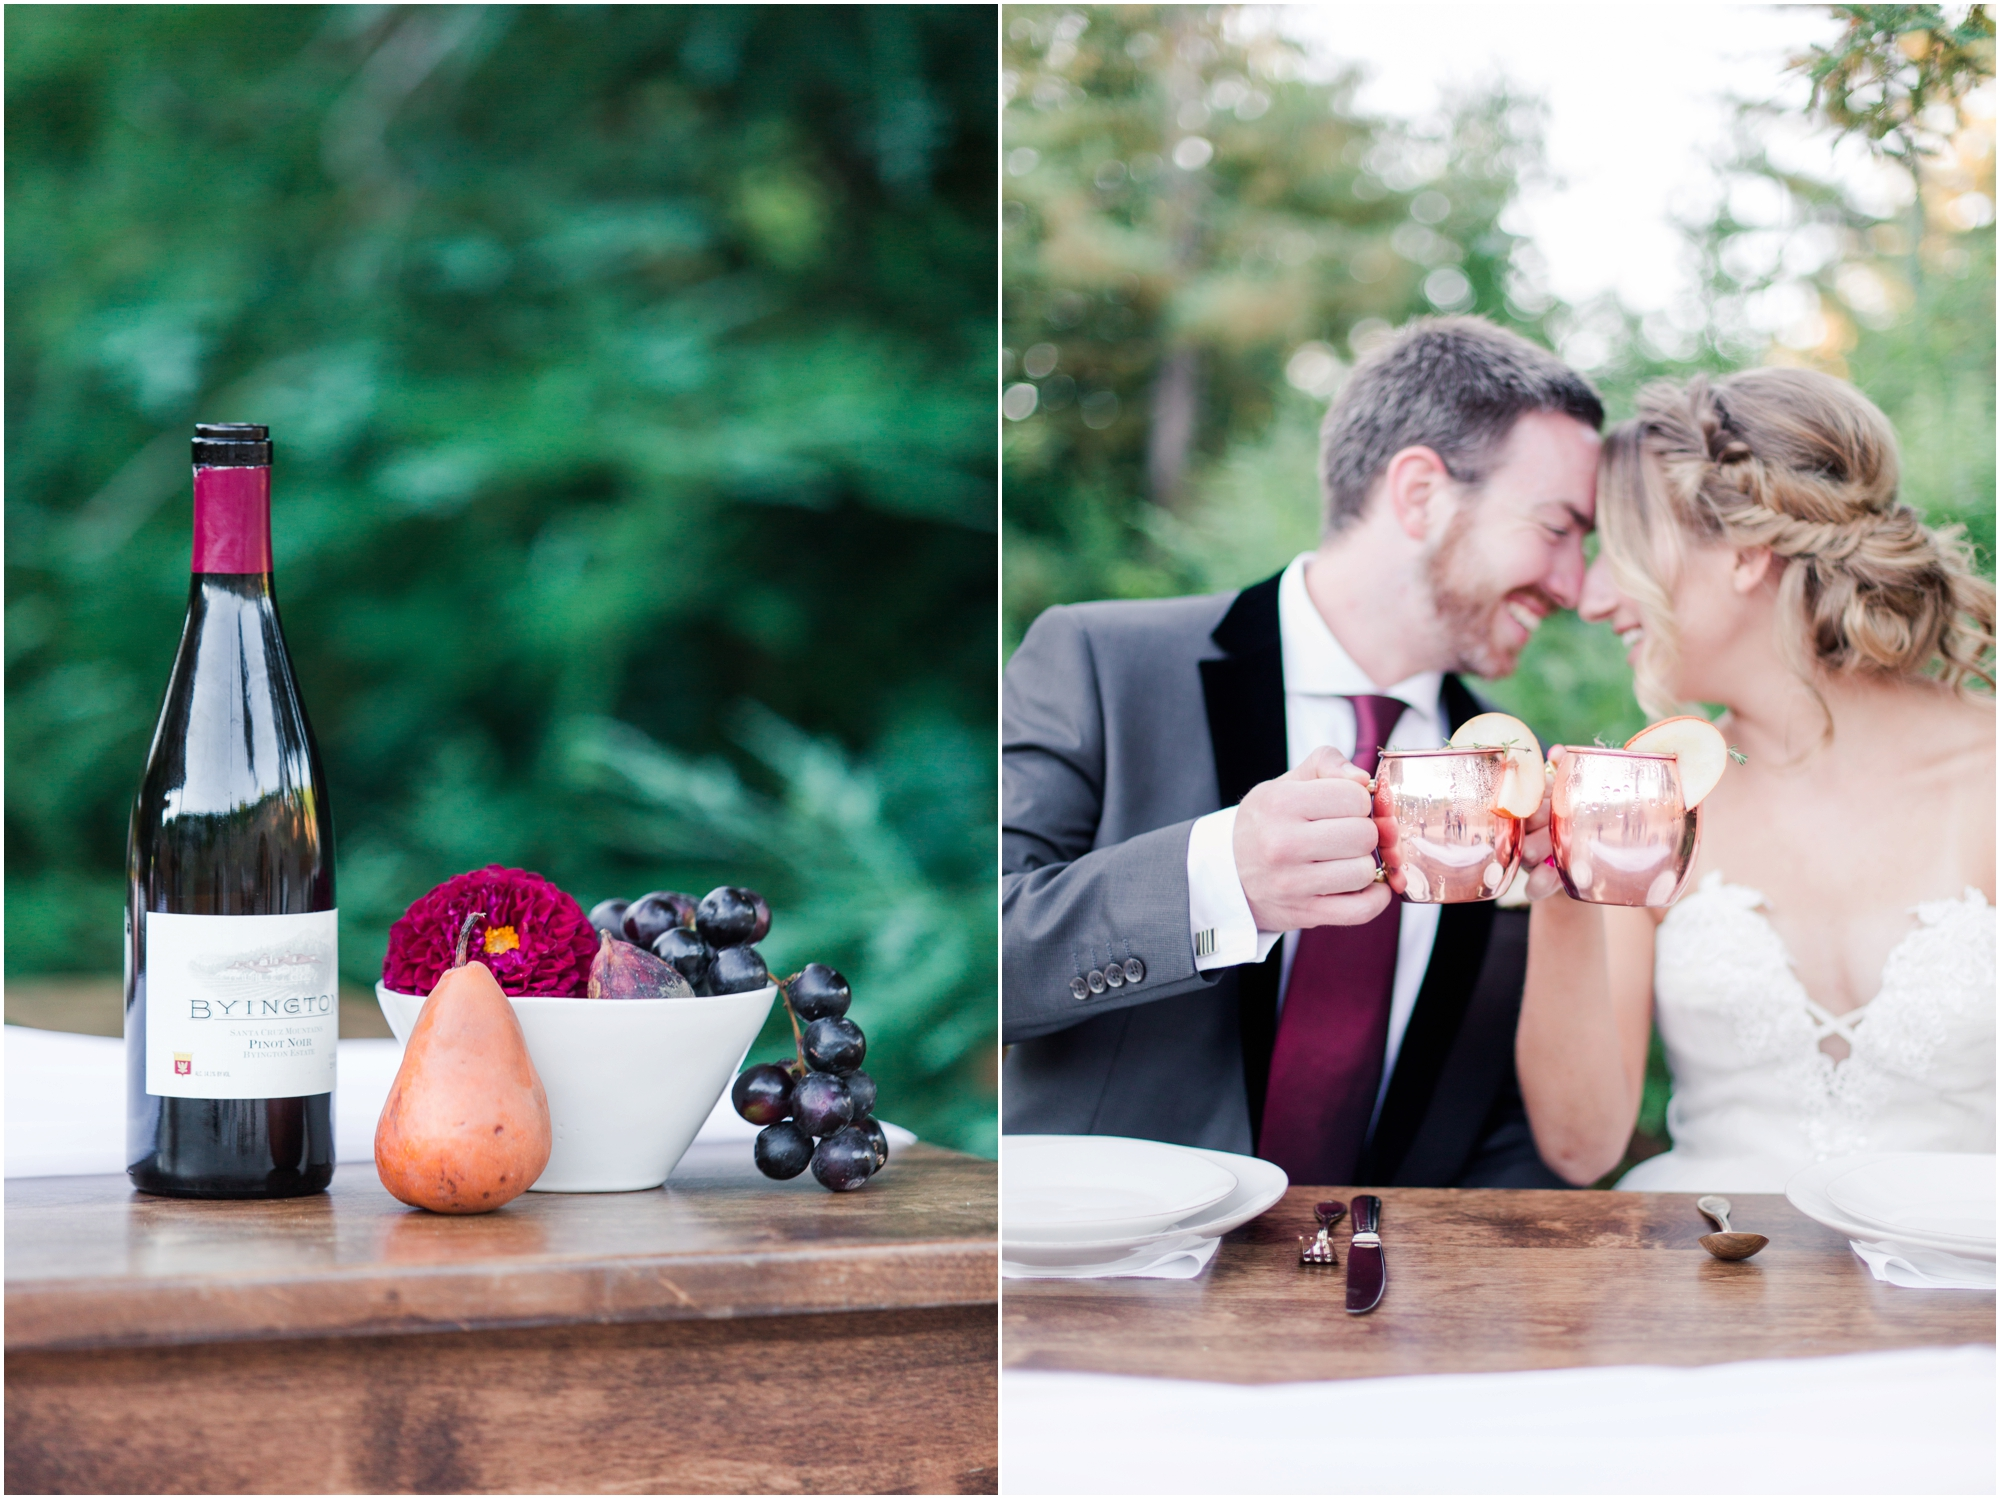 Byington Winery wedding pictures by Briana Calderon Photography_1428.jpg